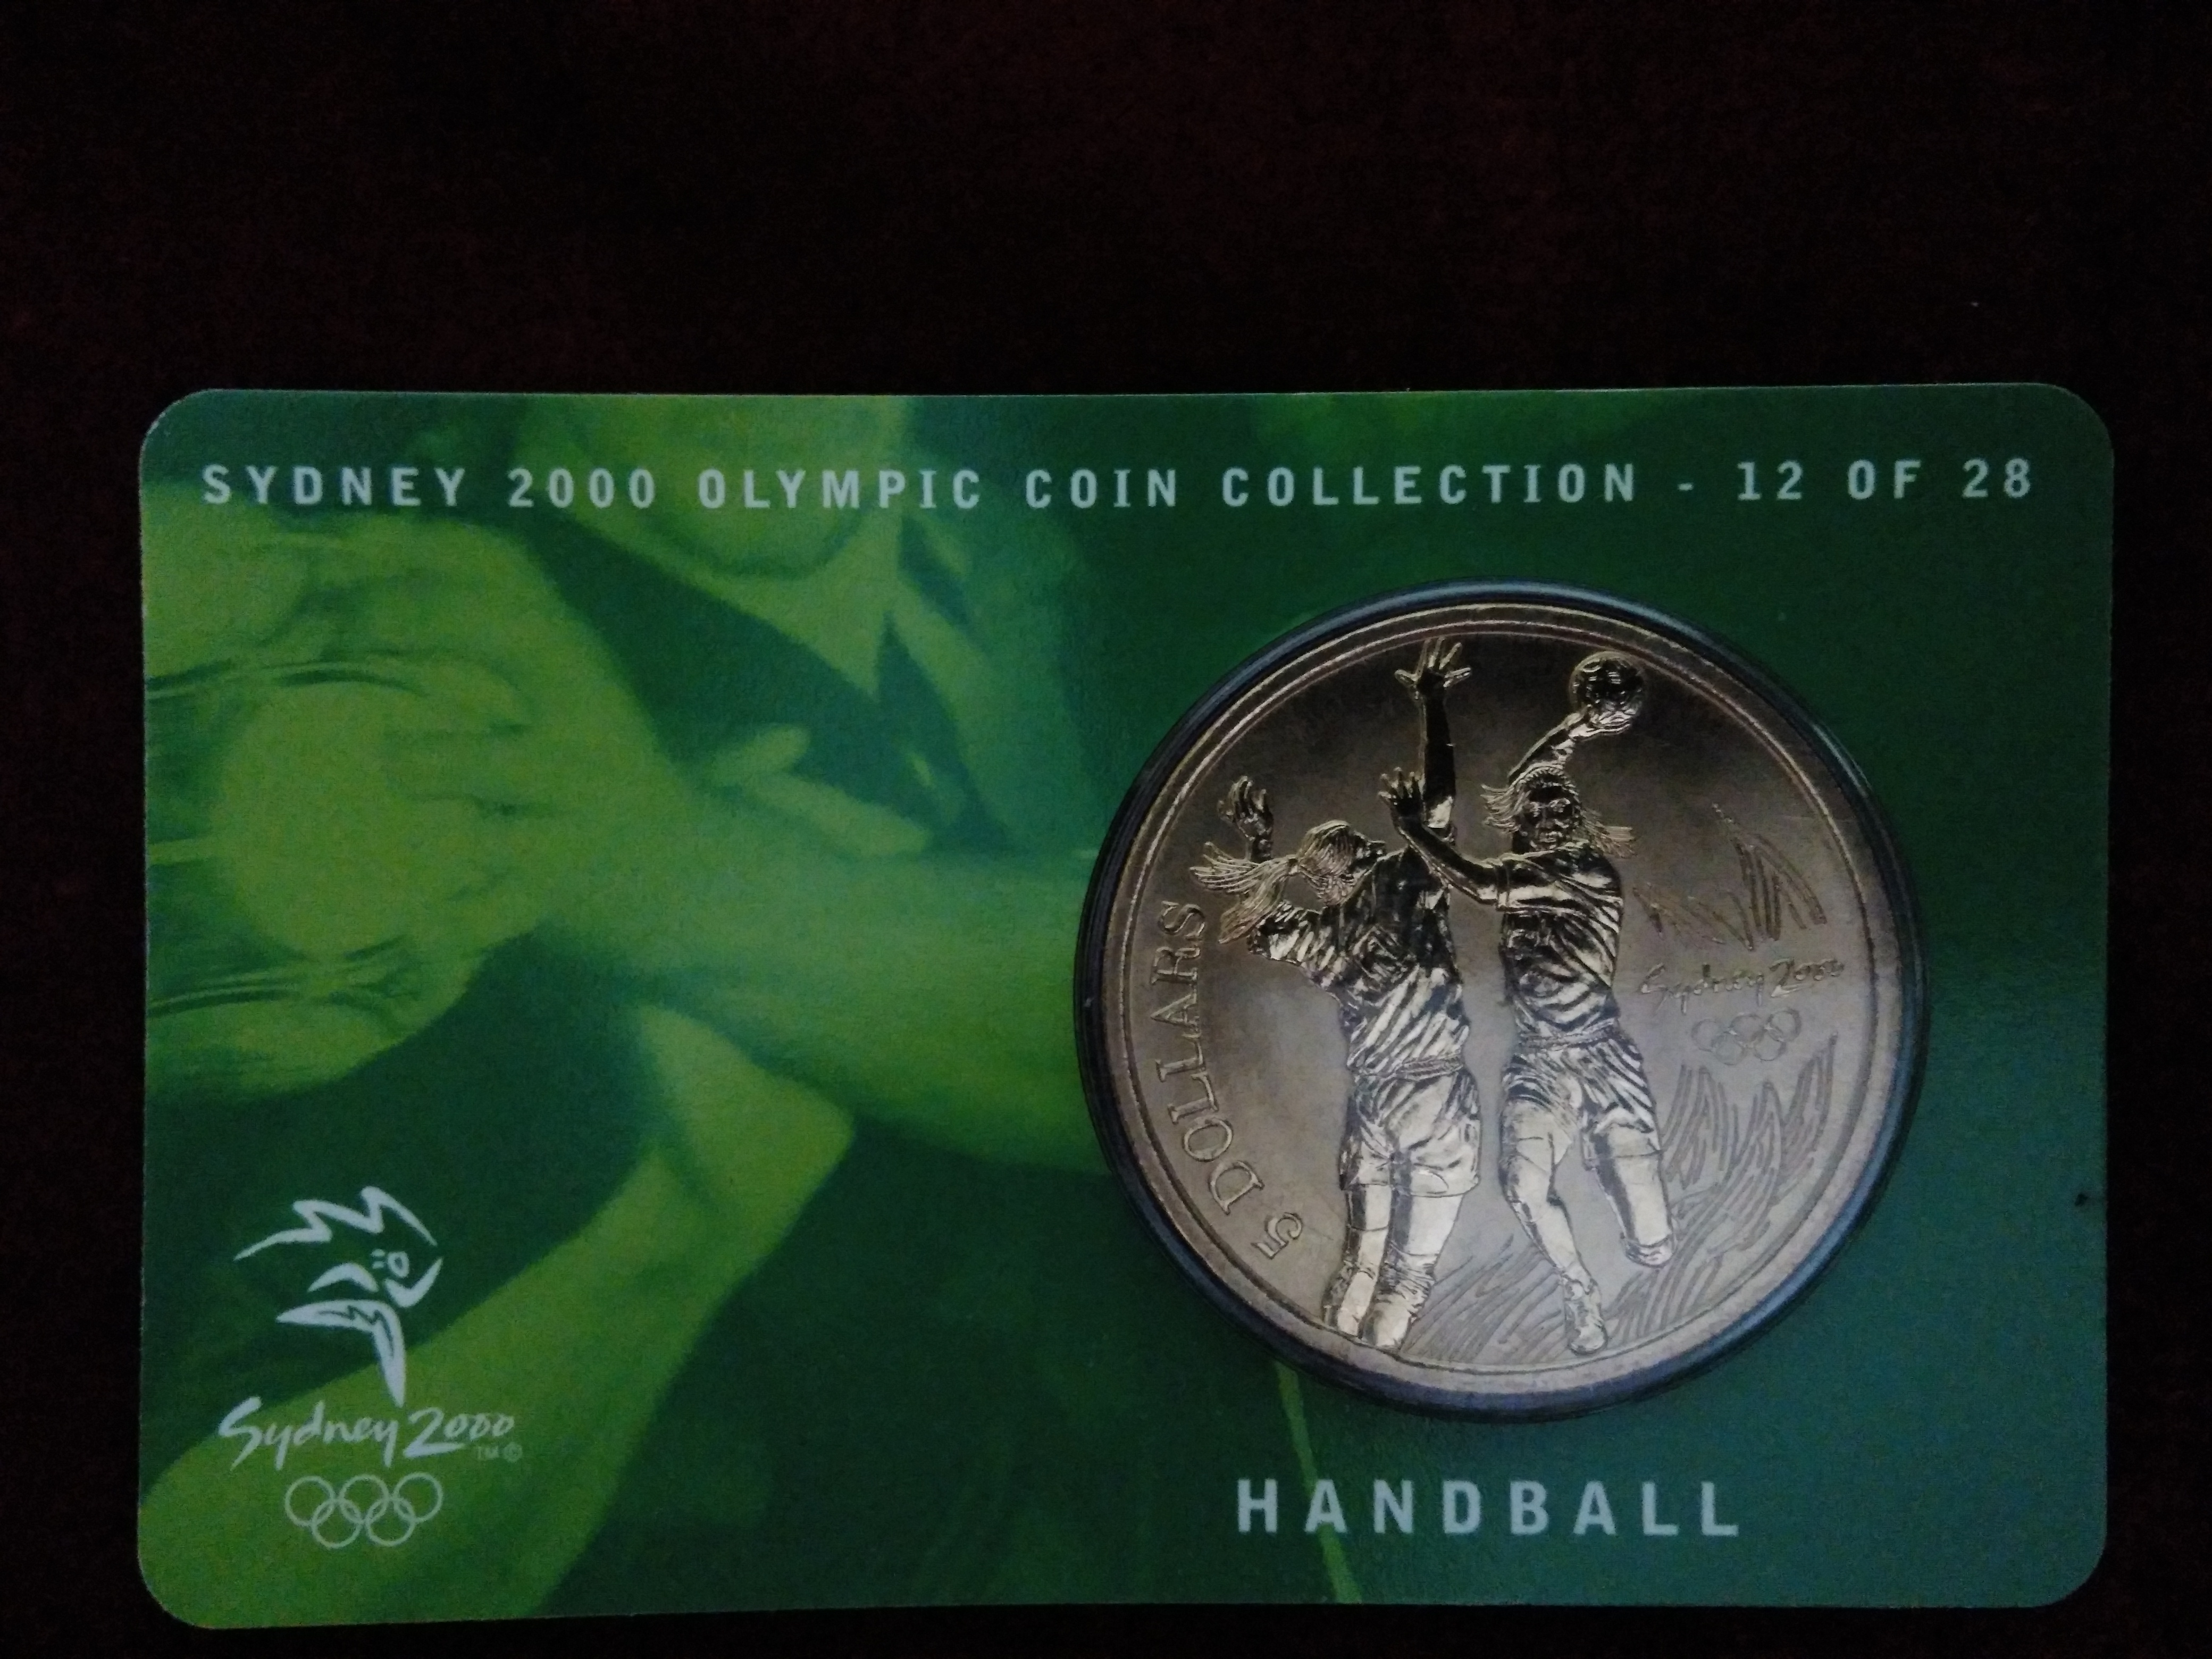 2000 $5 RAM UNC Coin Sydney Olympic coin collection cover Handball 12 of 28